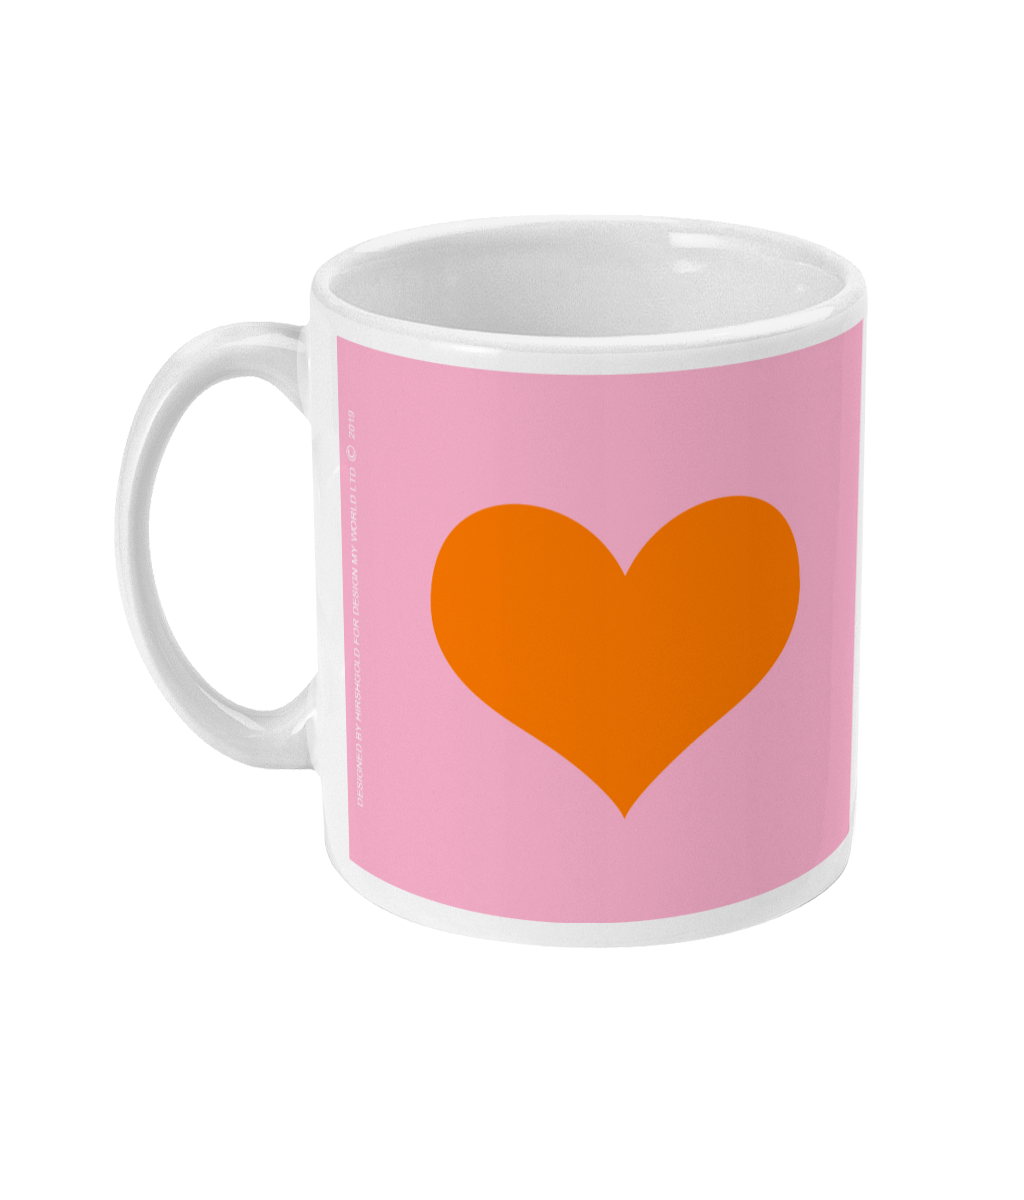 My Love Mug Lilac Wth Orange Heart